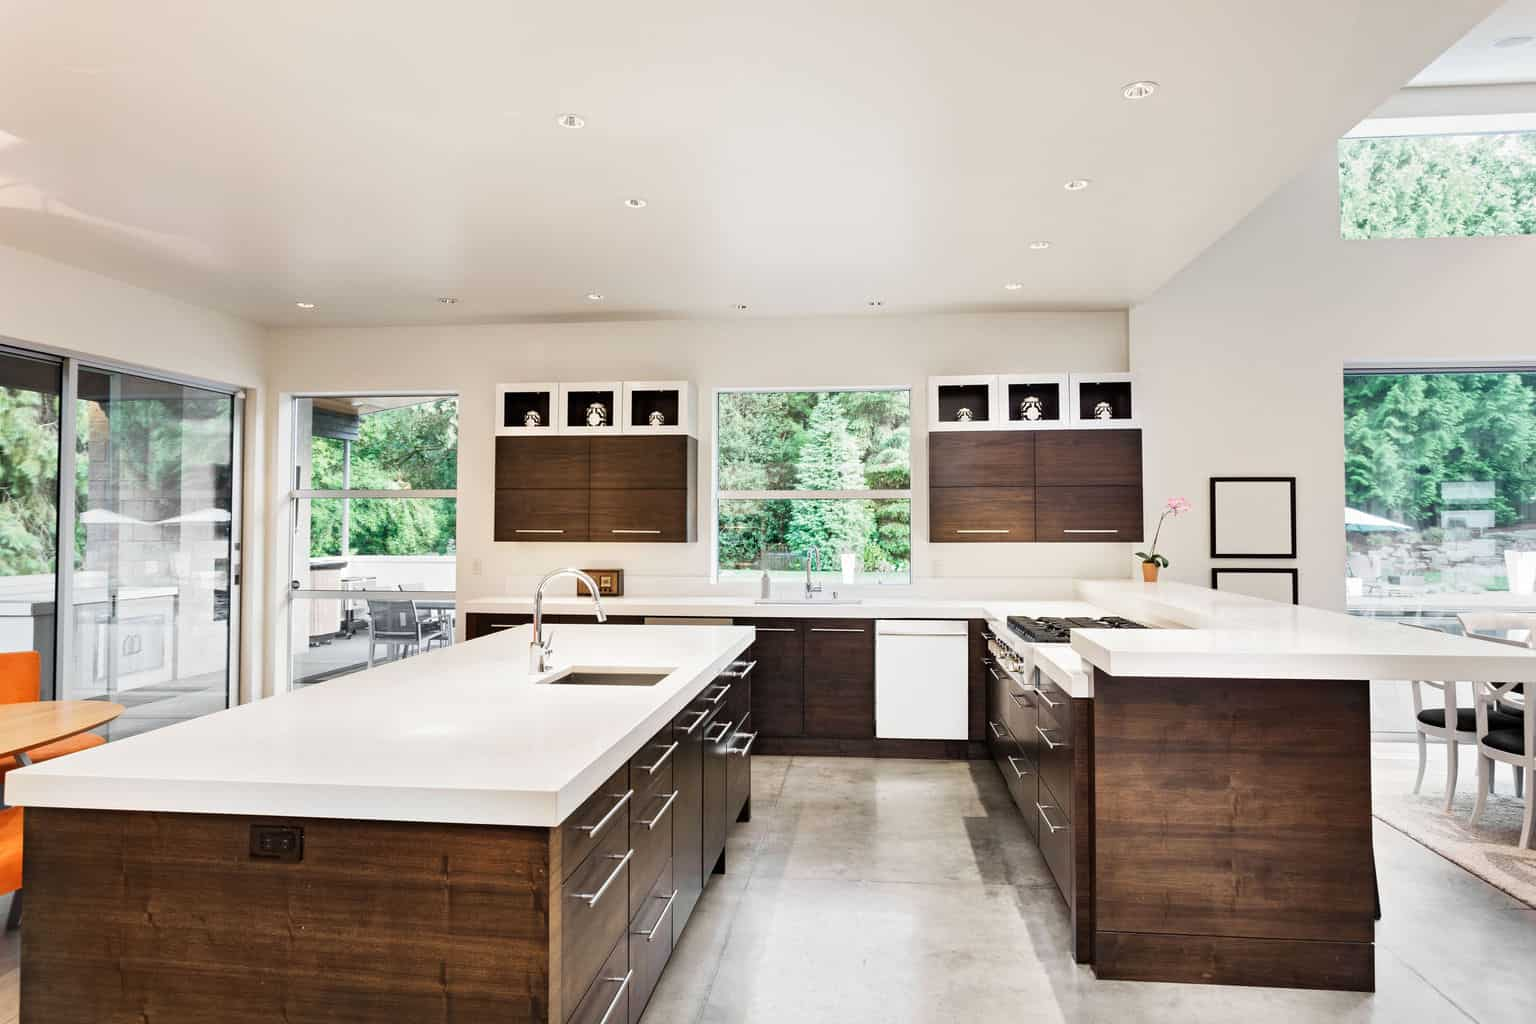 Quartzite flooring for posh outlook an guide to quartzite tile how it should be installed and the best way to care for it let us address some of the most common questions about quartzite stone flooring for you dailygadgetfo Gallery